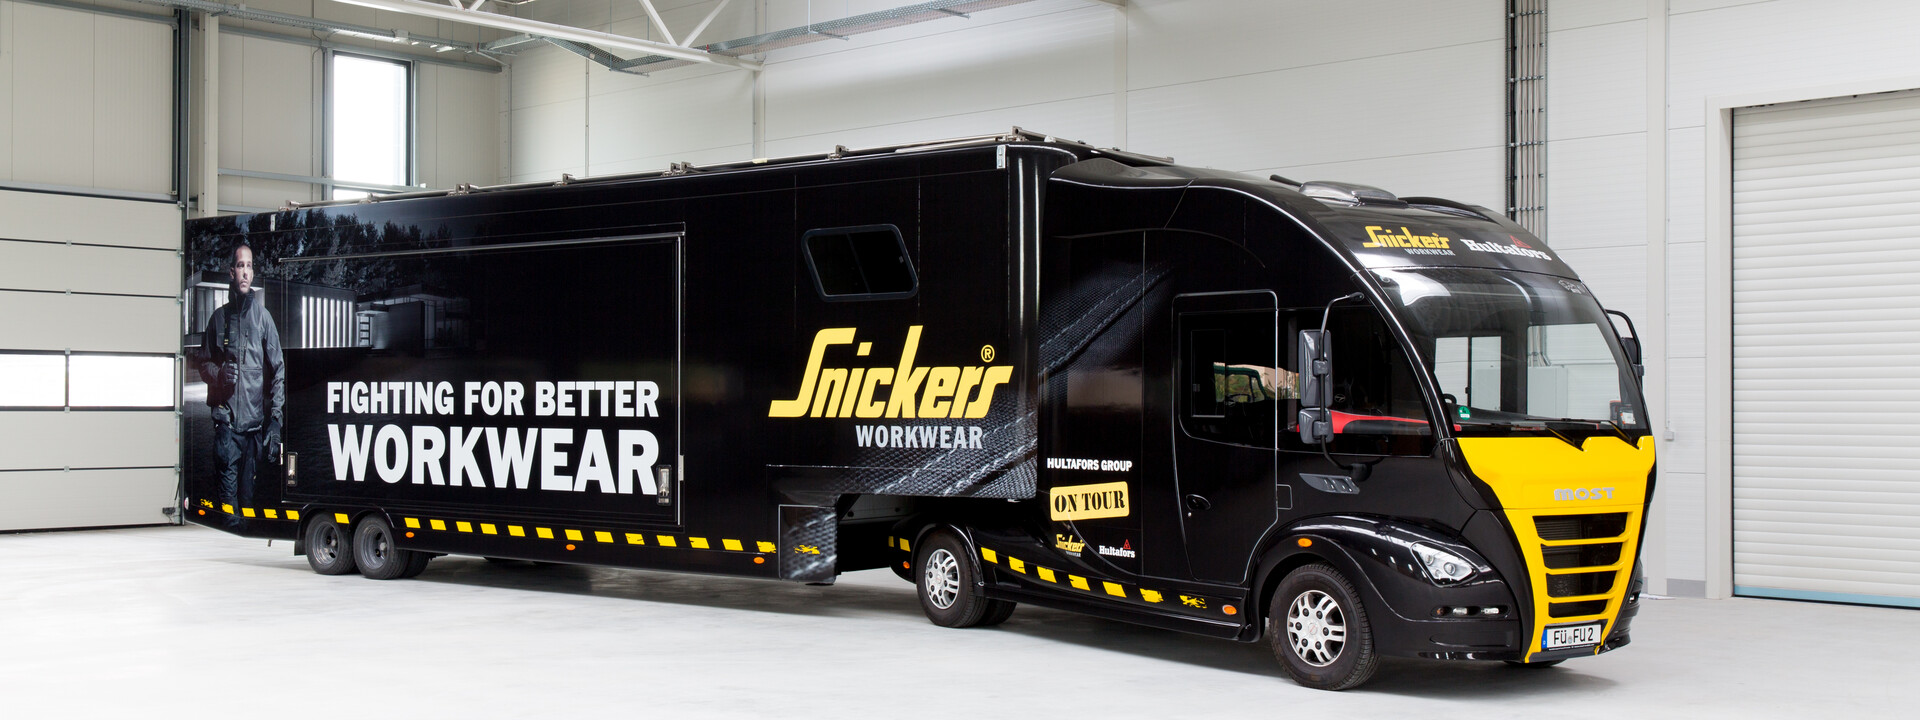 Snickers Showtruck